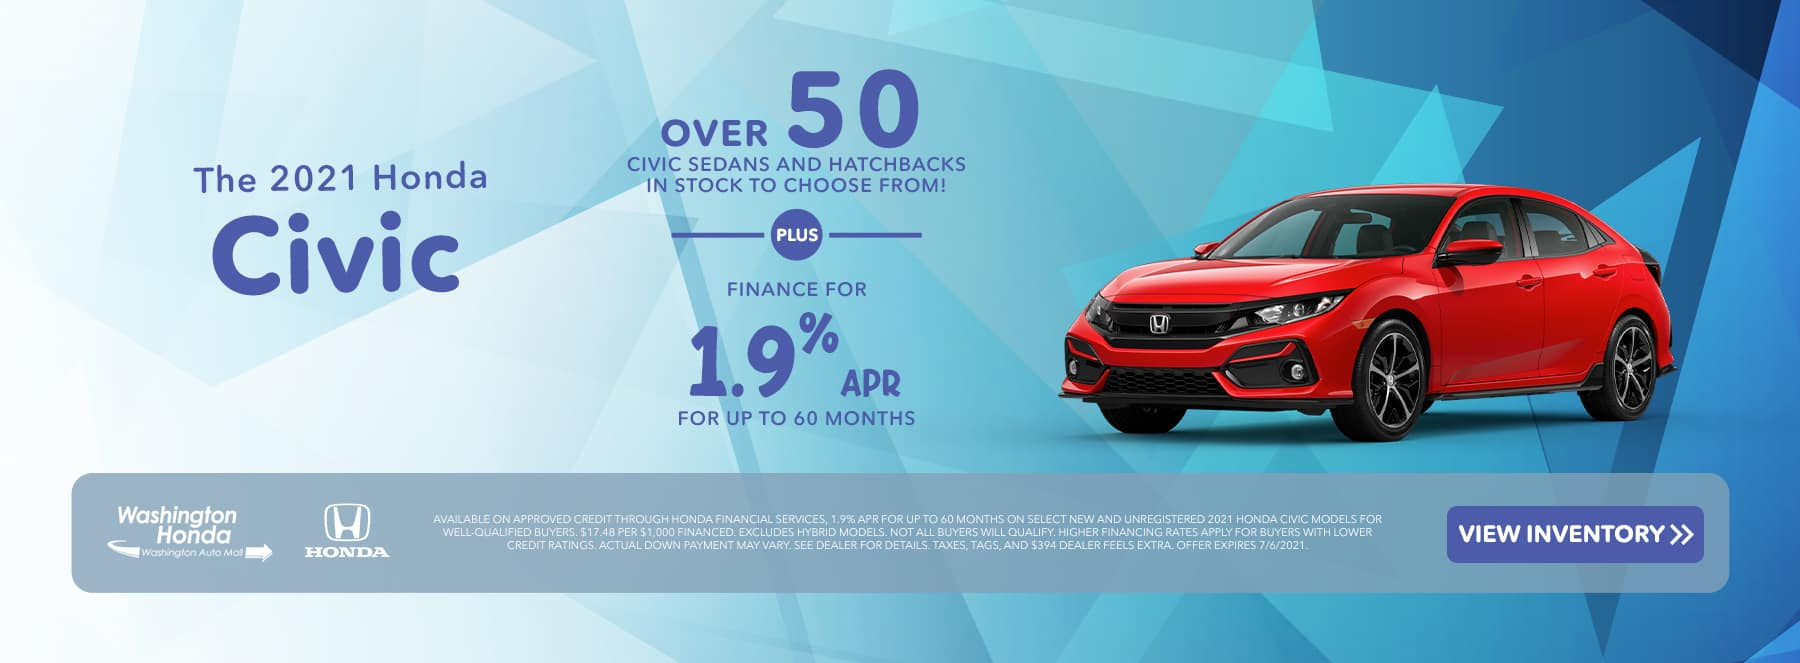 The 2021 Honda Civic Over 50 Civic Sedans & Hatchbacks In Stock to Choose From PLUS Finance for 1.9% APR for up to 60 Months